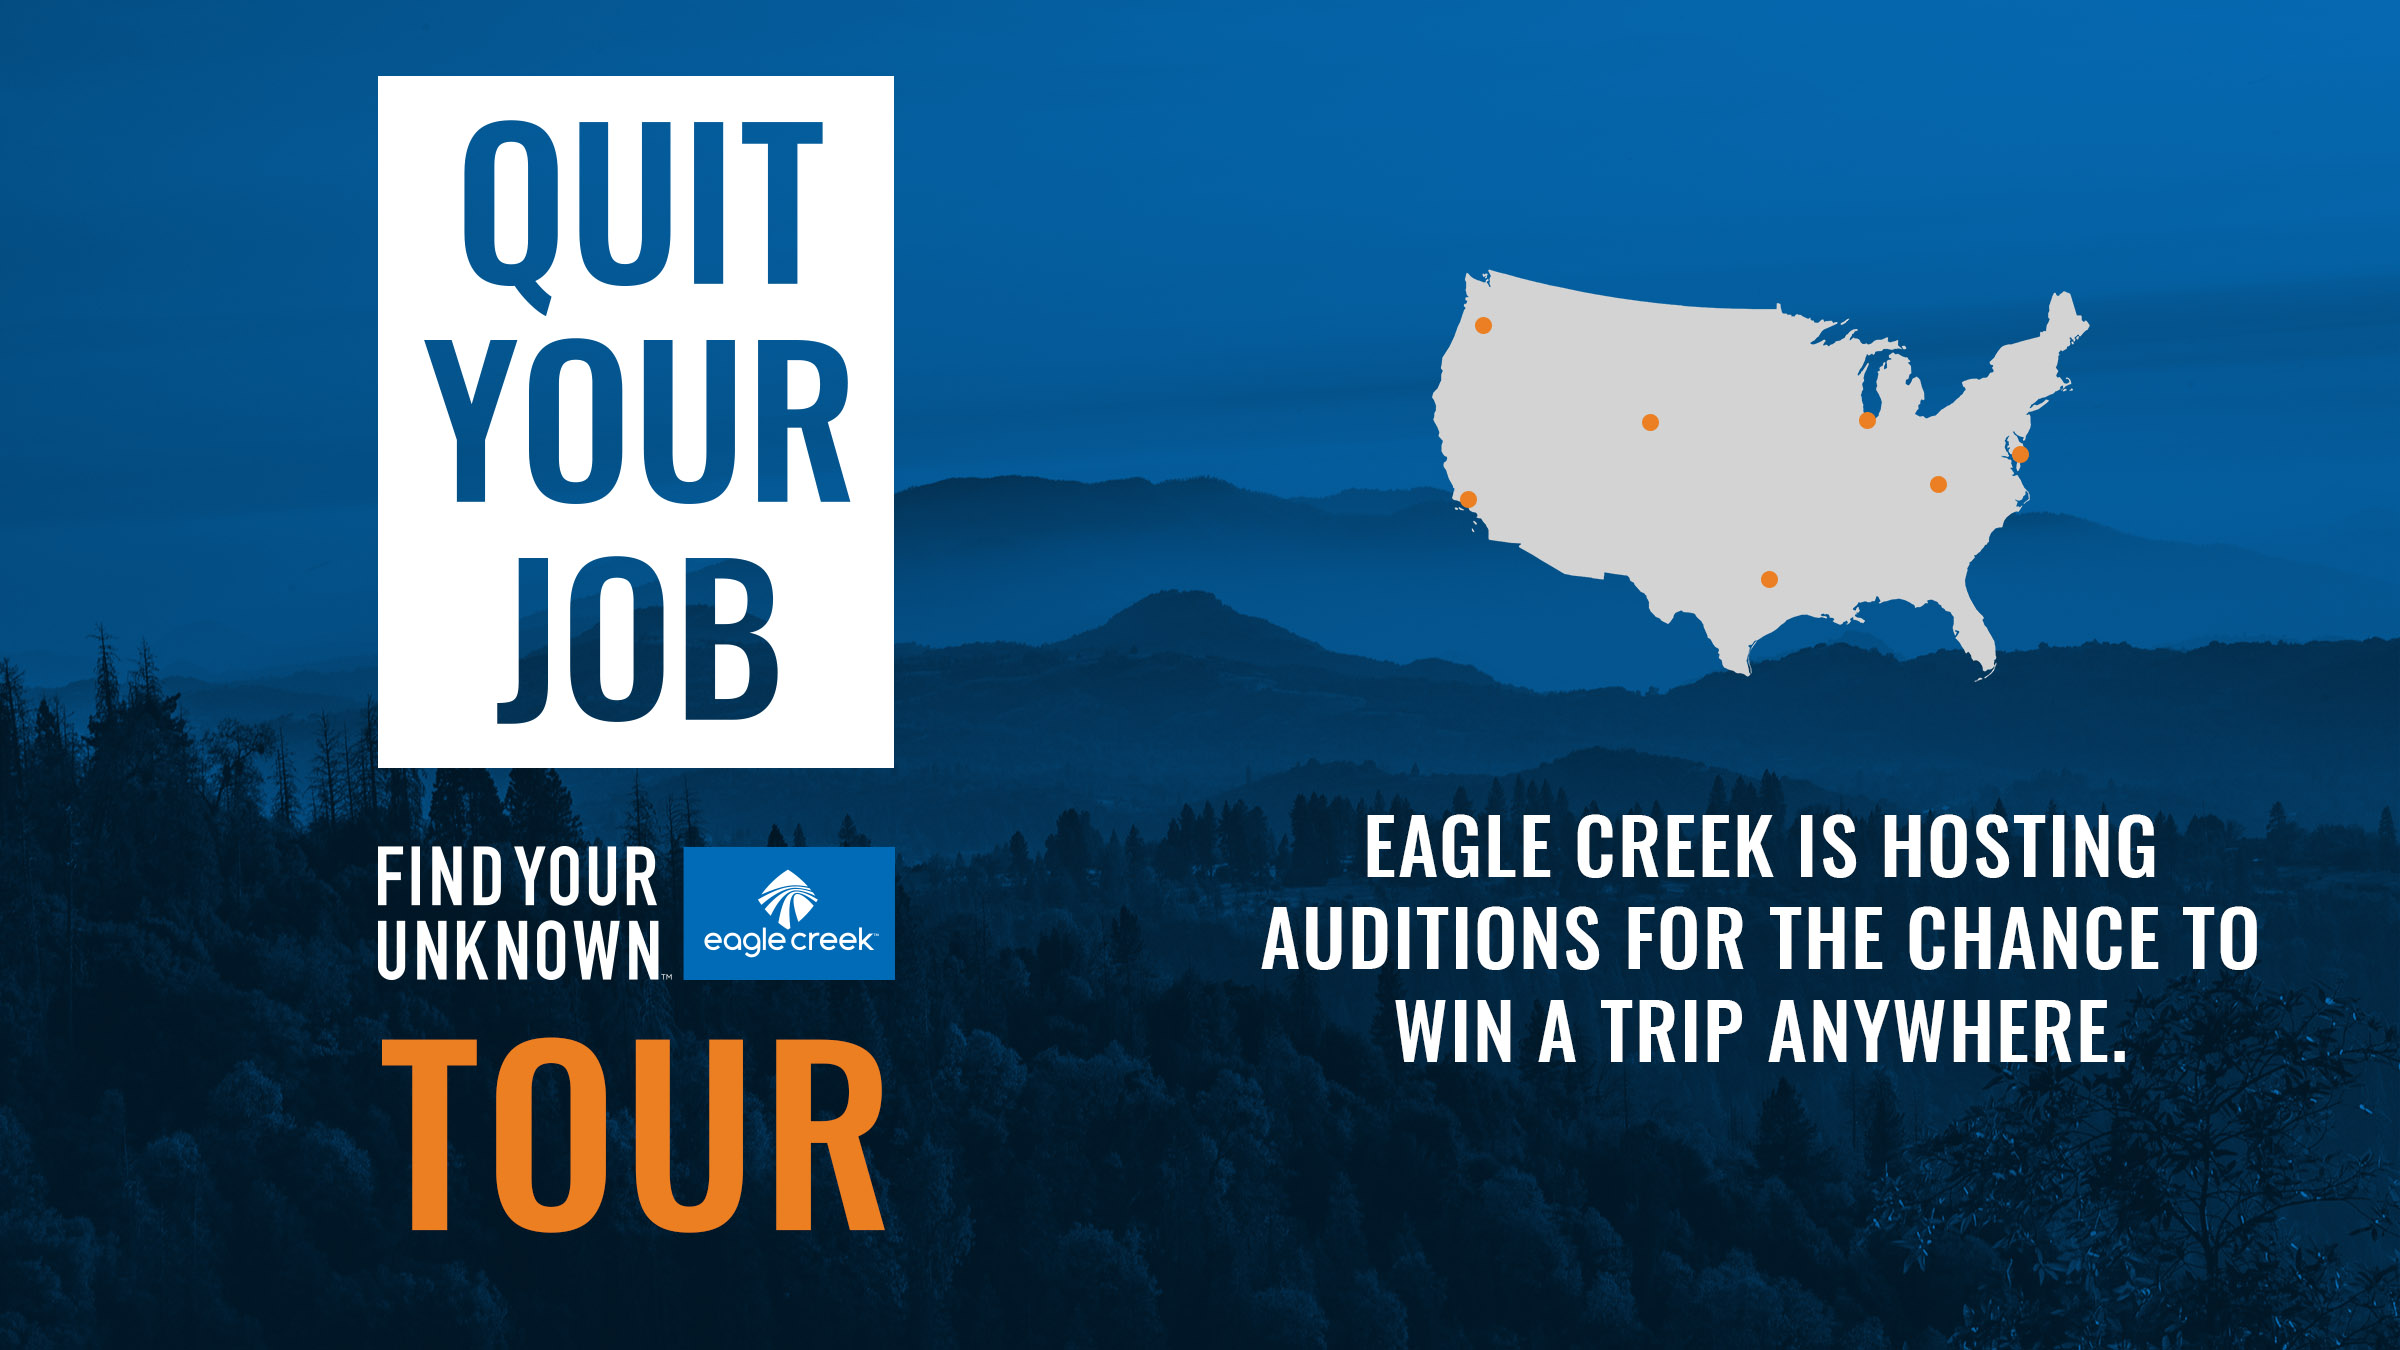 I helped concept an organize a nationwide contest to get people to take their vacation time (maybe even quit) in order to get out and travel. The kick-off activation at Outdoor Retailer in Denver drew in three times the expected number of interviewees. Retail partners across the country are excited for the roll out to continue through 2019.